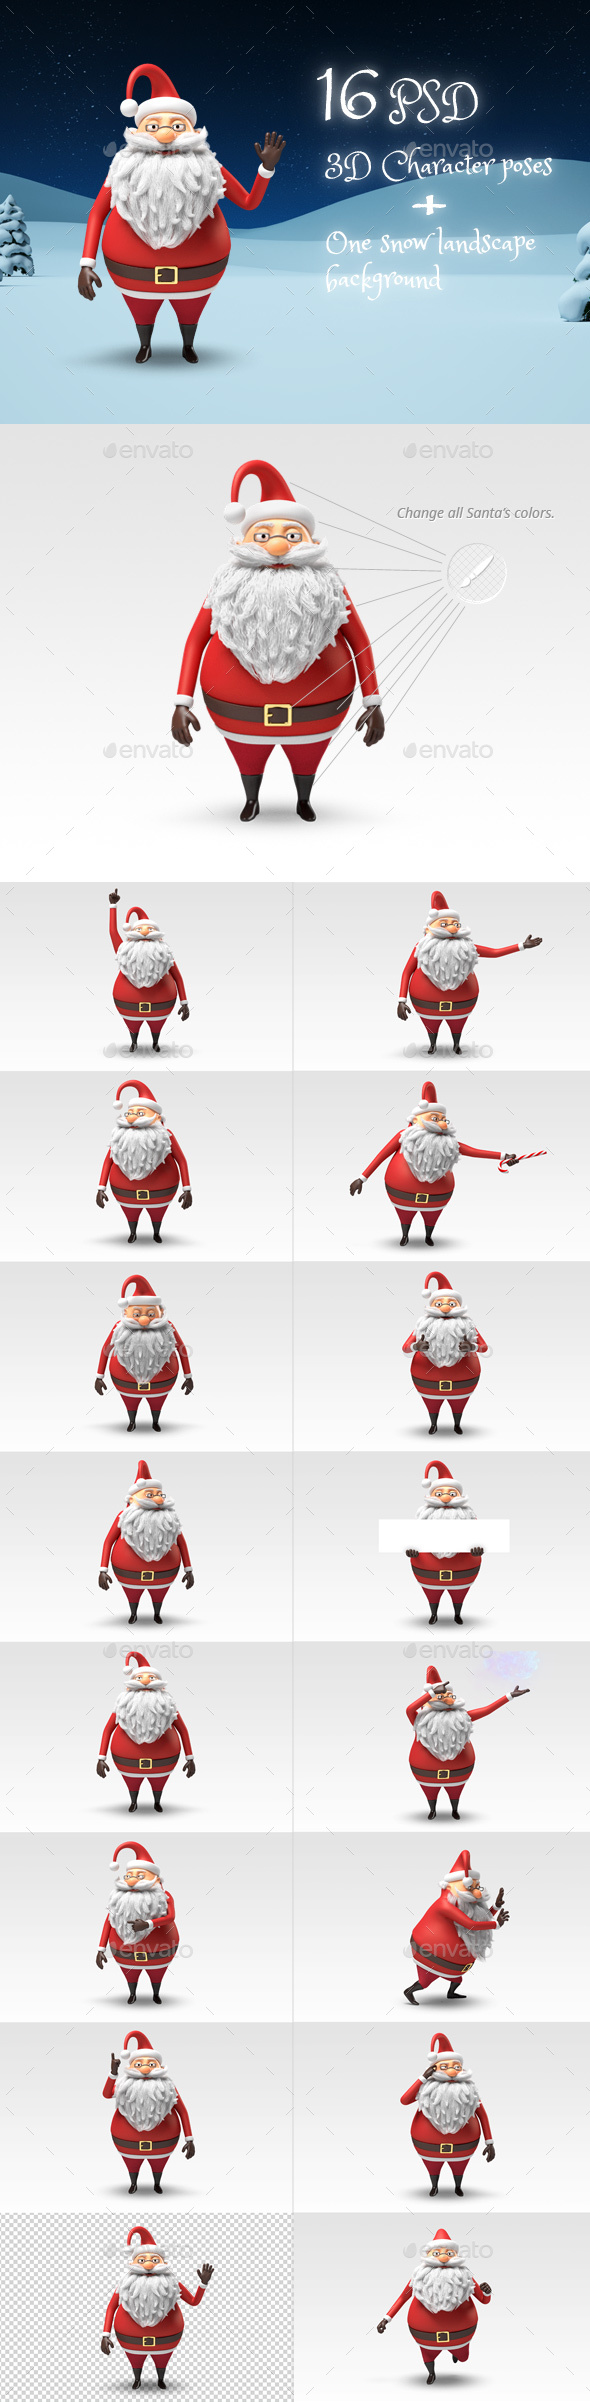 santa christmas 3d character stills by flasheasy graphicriver